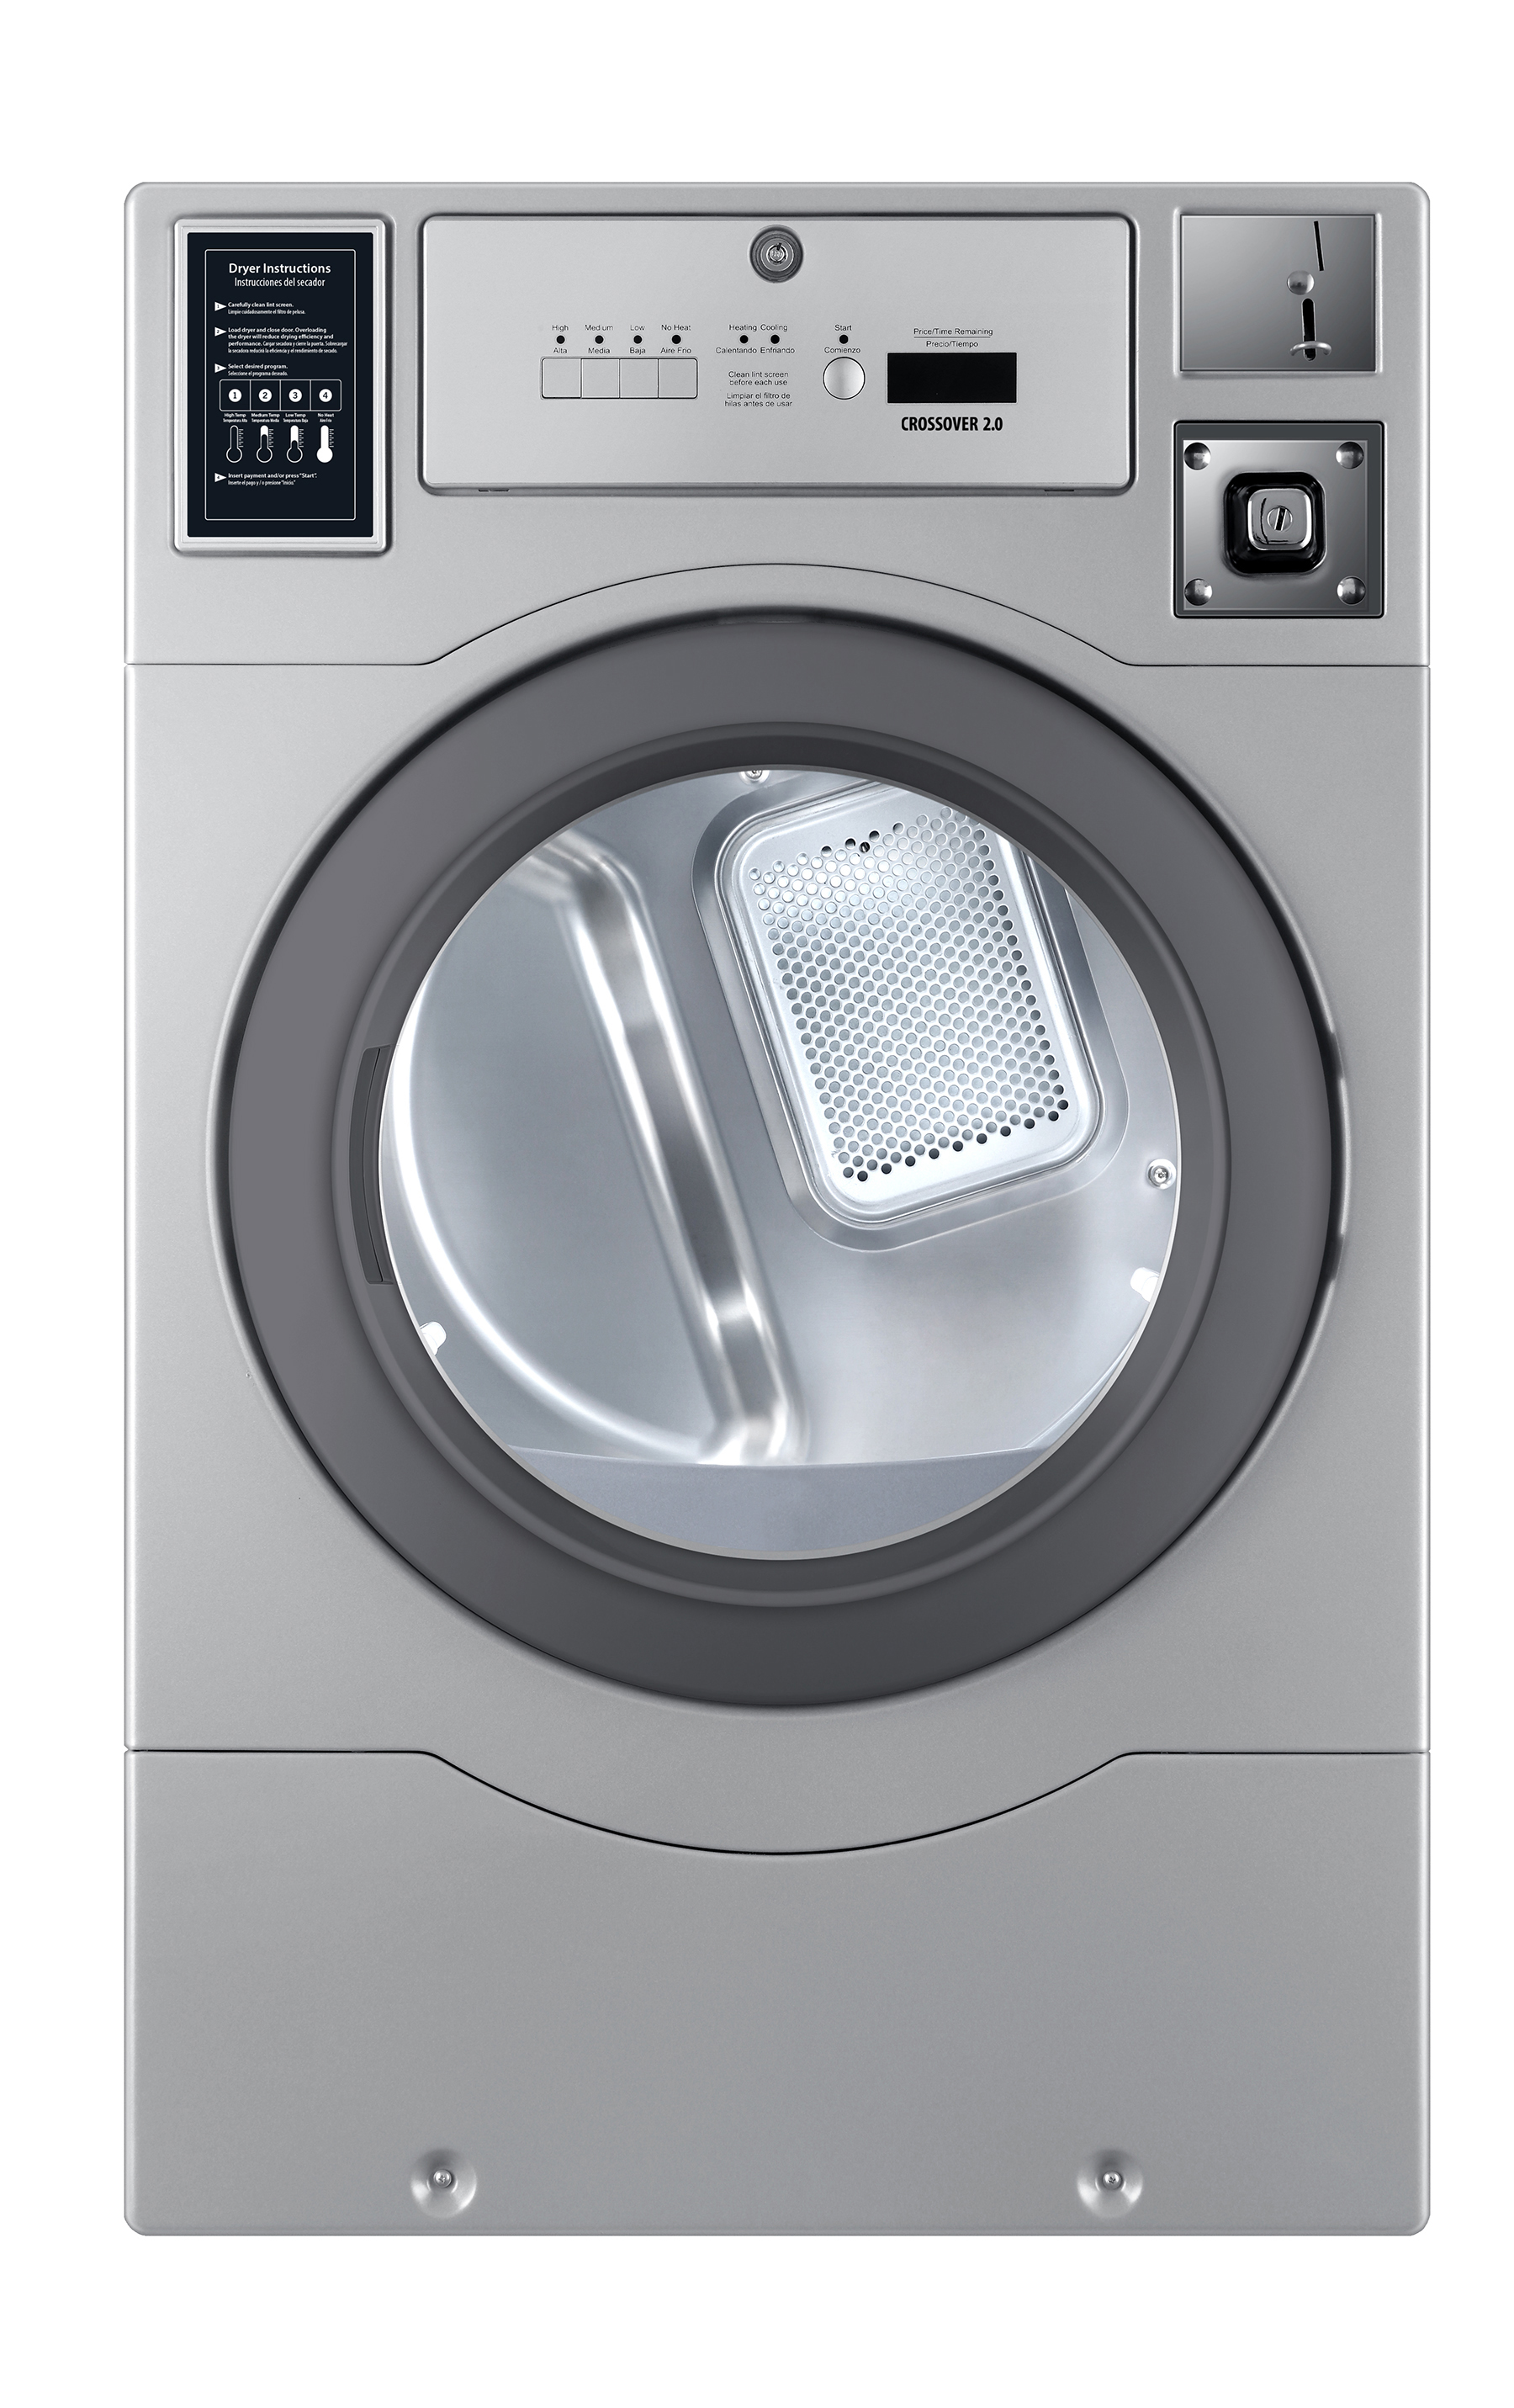 Crossover Laundry Crossover True Commercial Laundry - 7.0 CF Top Control Electric Dryer, Coin Option Included/Card Ready, Silver, 27""